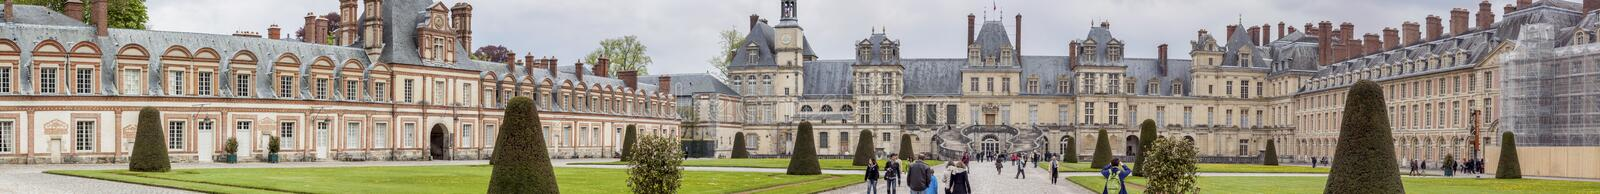 Royal hunting castle in Fontainebleau, France. FOUNTAINBLEAU, FRANCE - APRIL 28:Royal hunting castle on april 28, 2013 in Fontainebleau. Palace of Fontainebleau stock photo